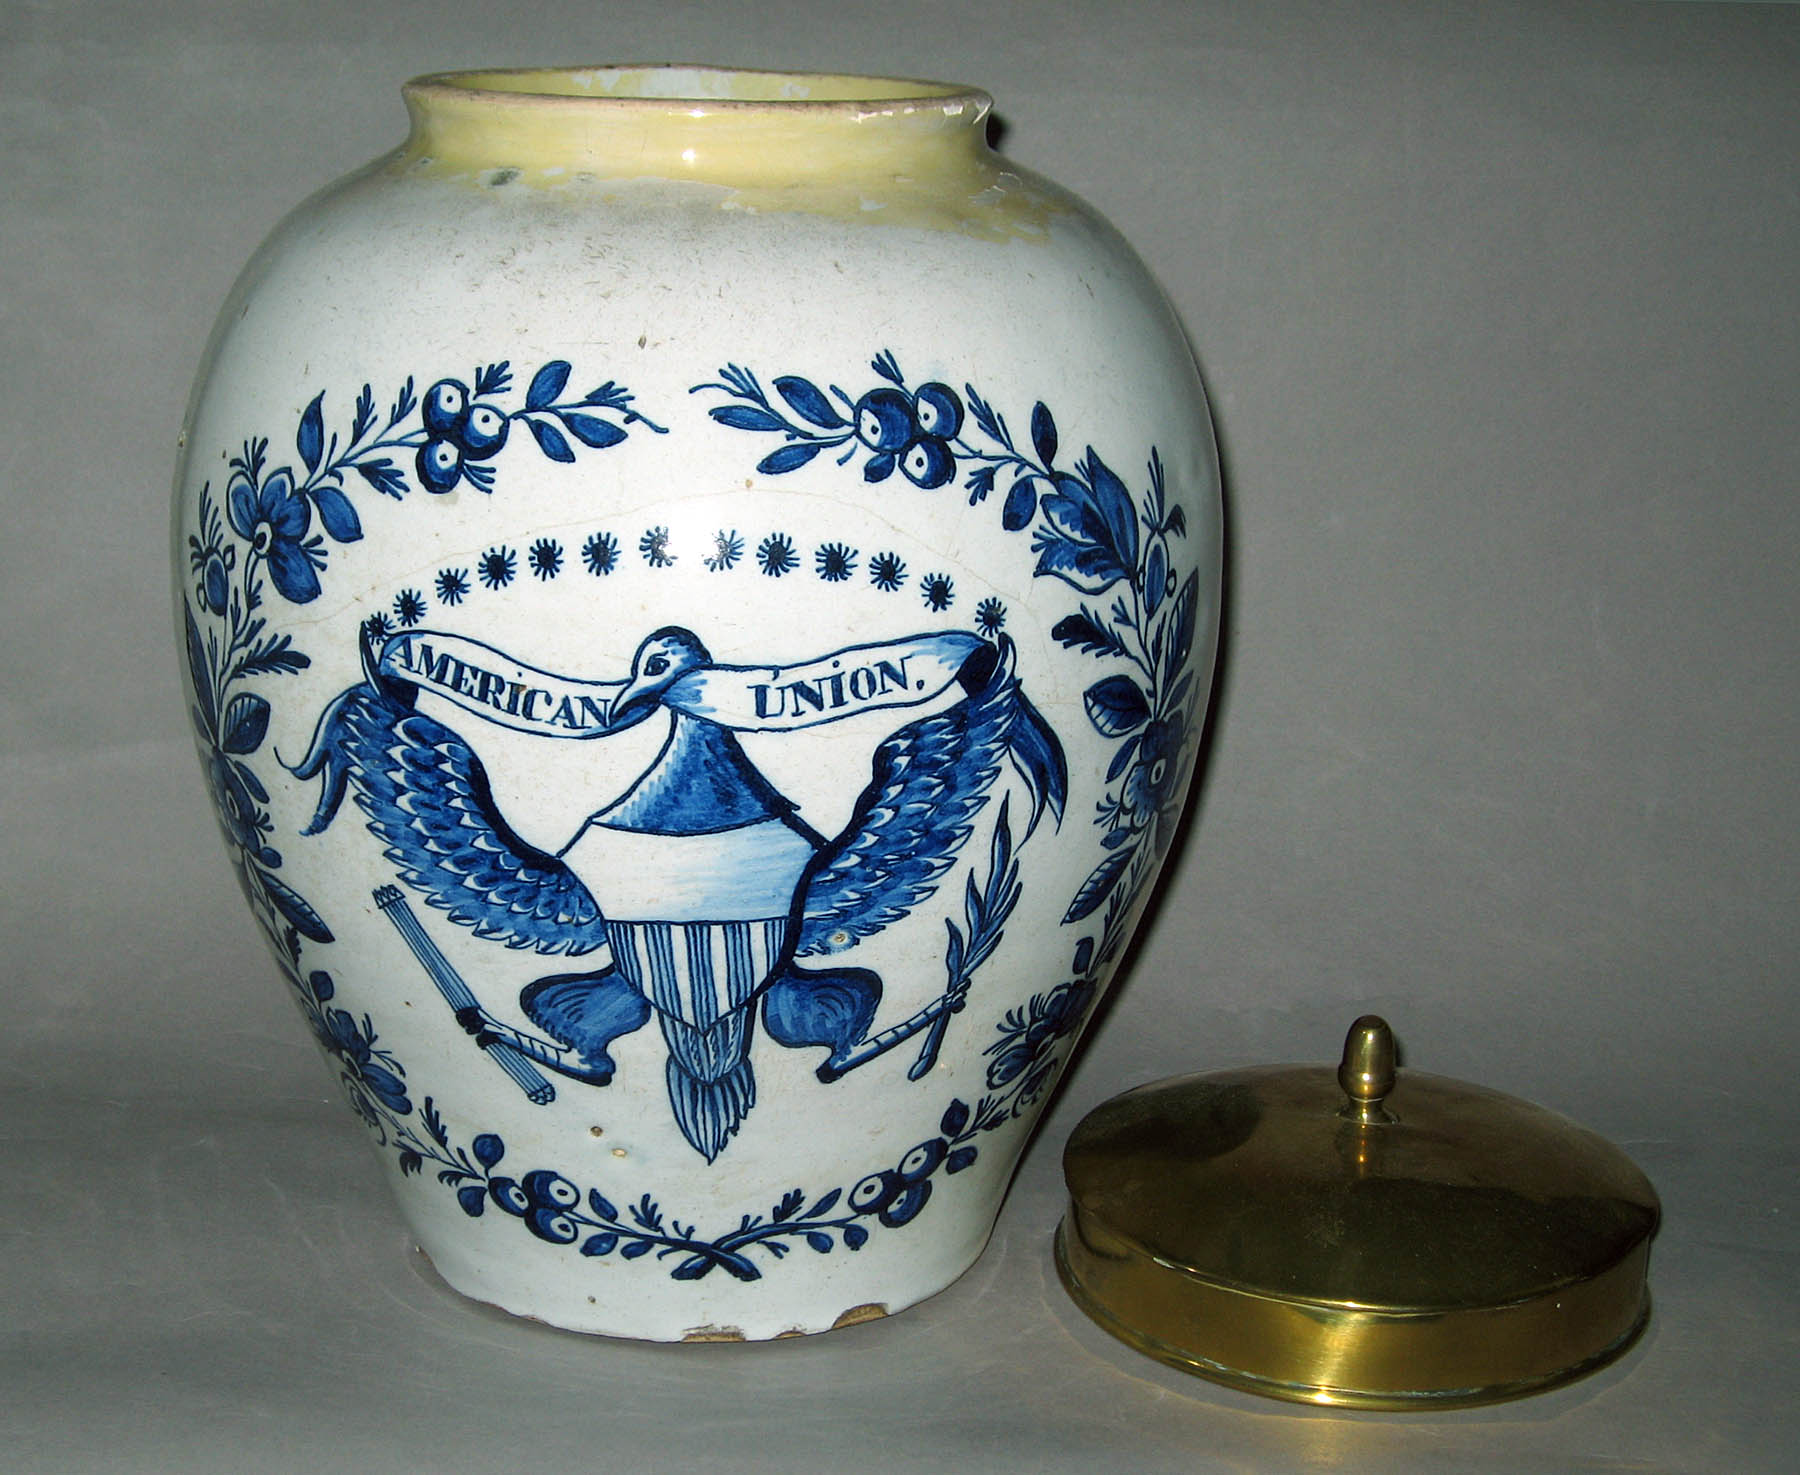 1956.0540 A, B Tobacco jar and cover